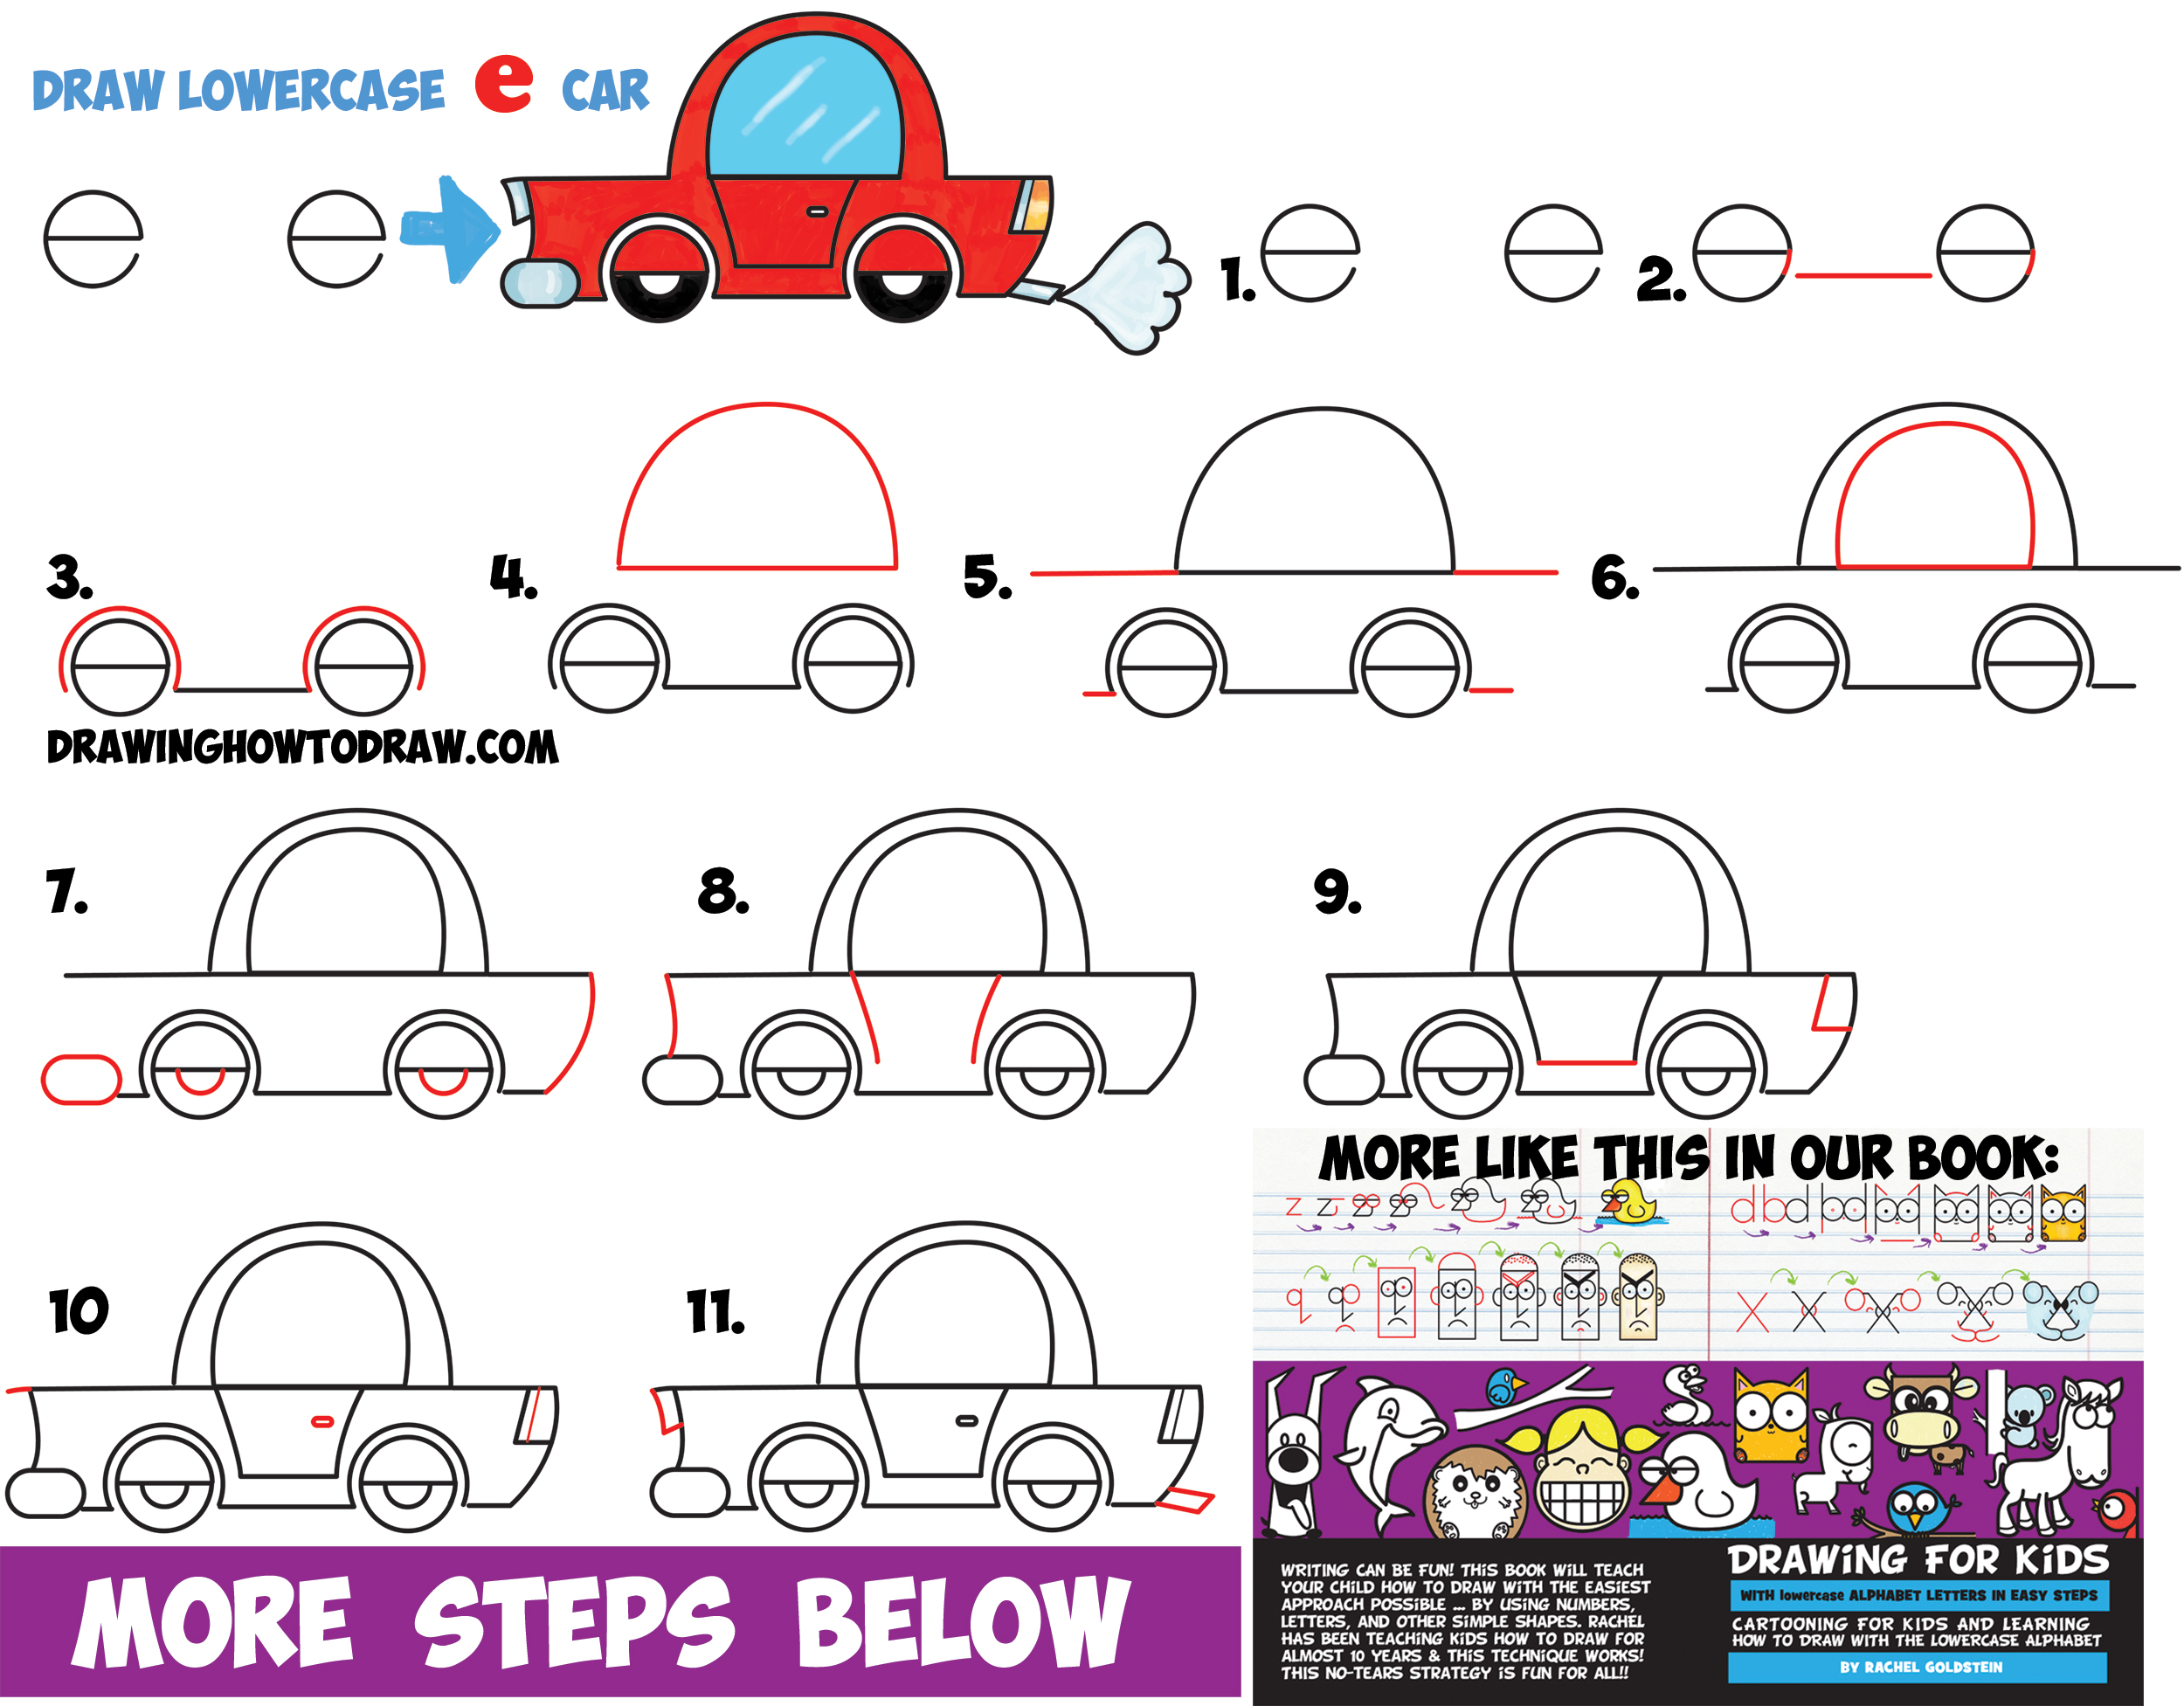 how to draw a cartoon car from lowercase letter e shapes - easy